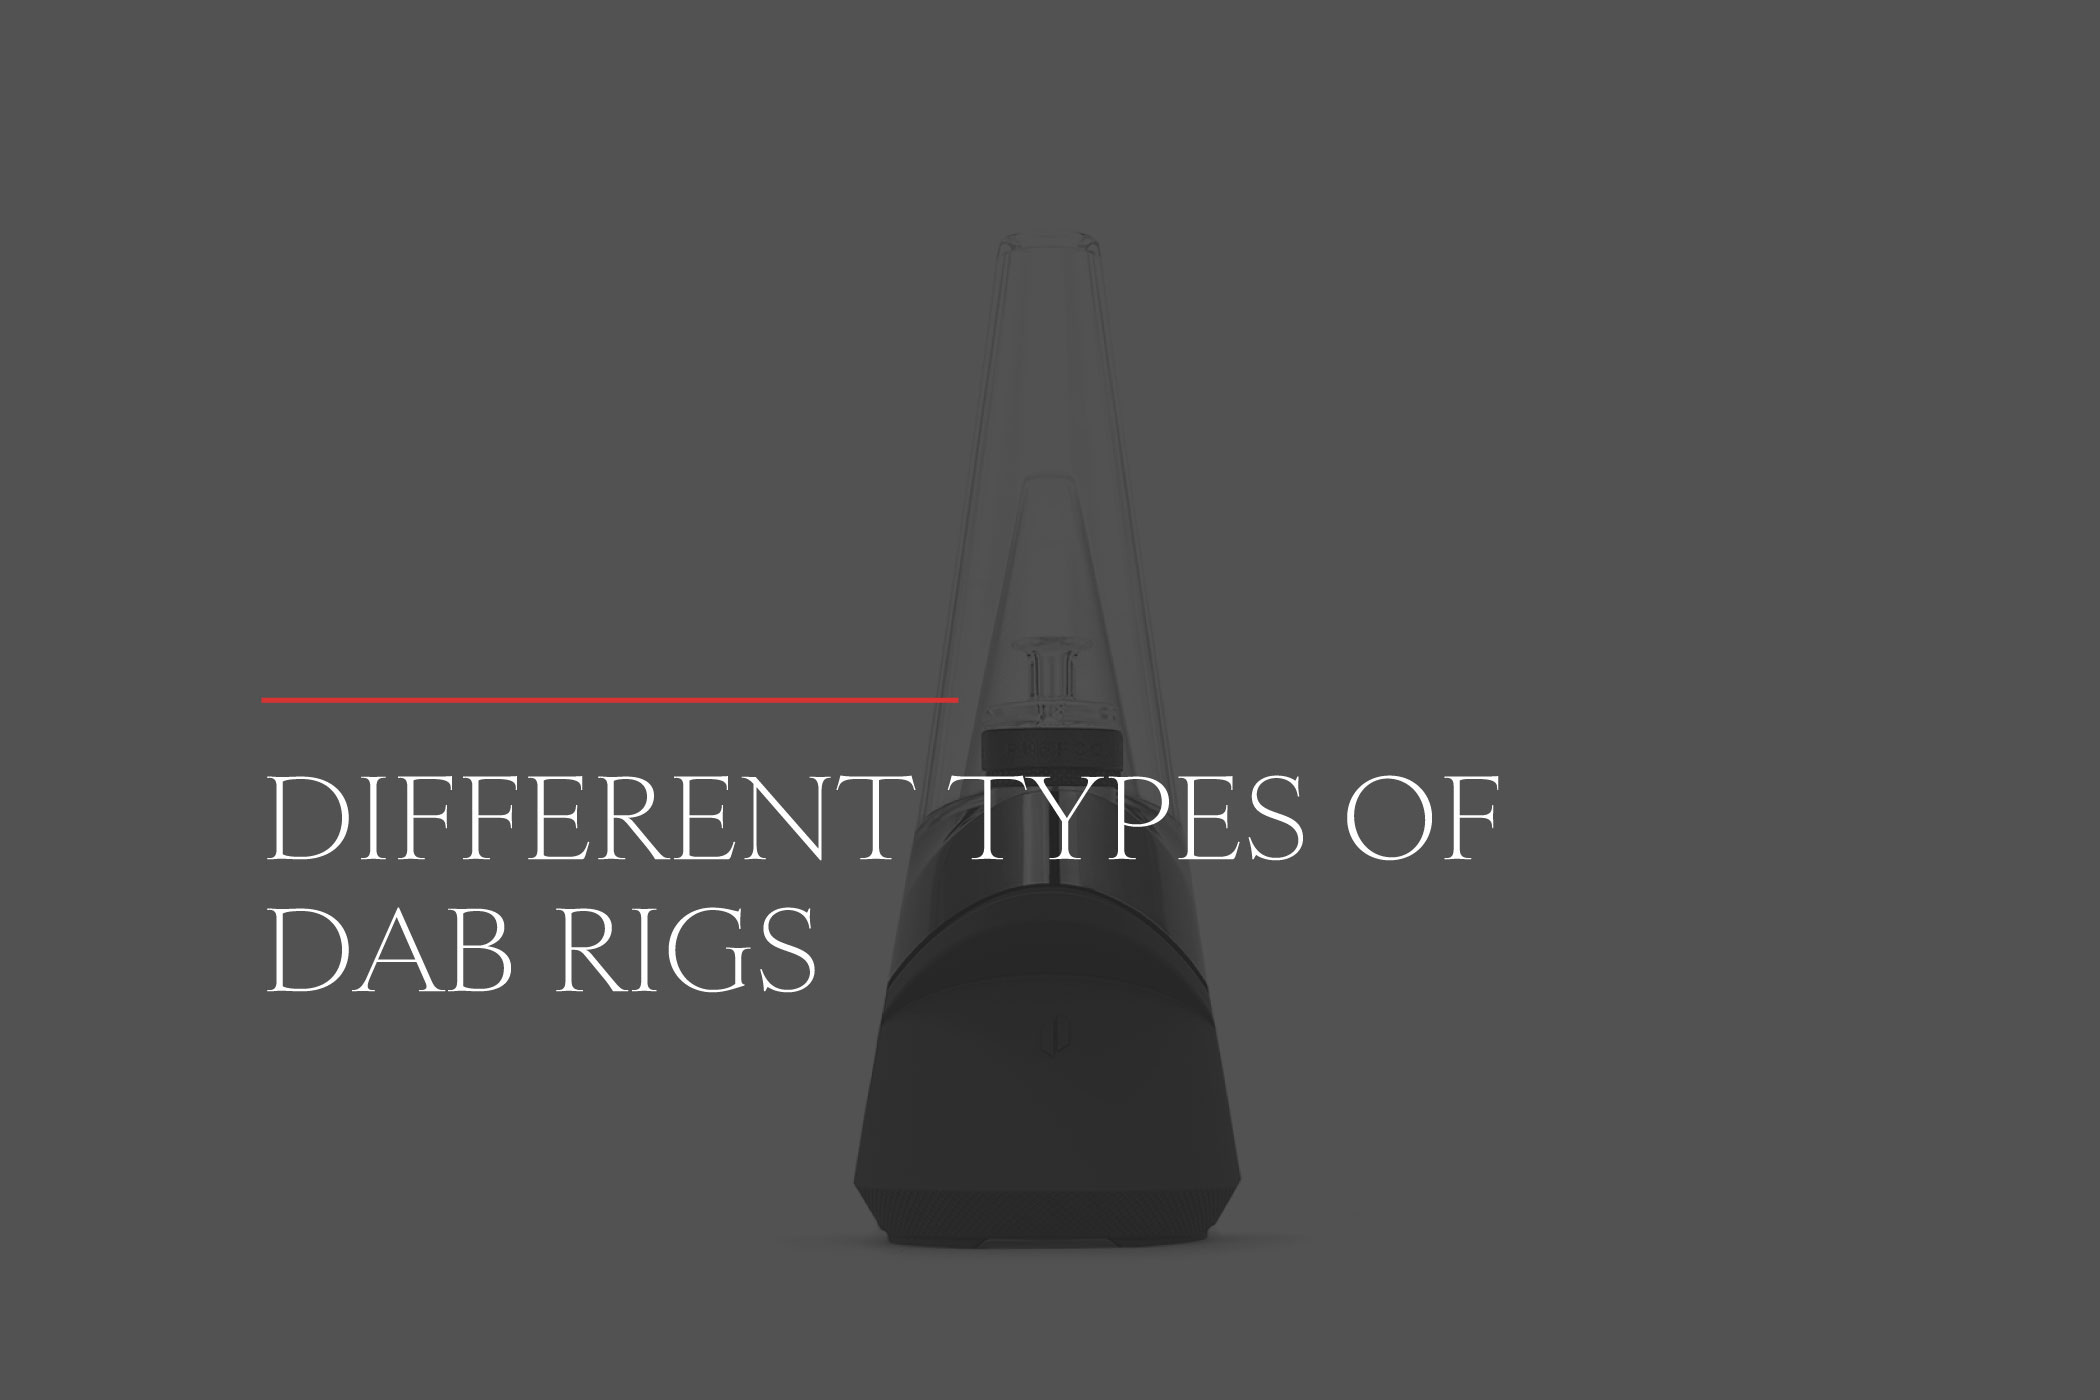 Different Types of Dab Rigs